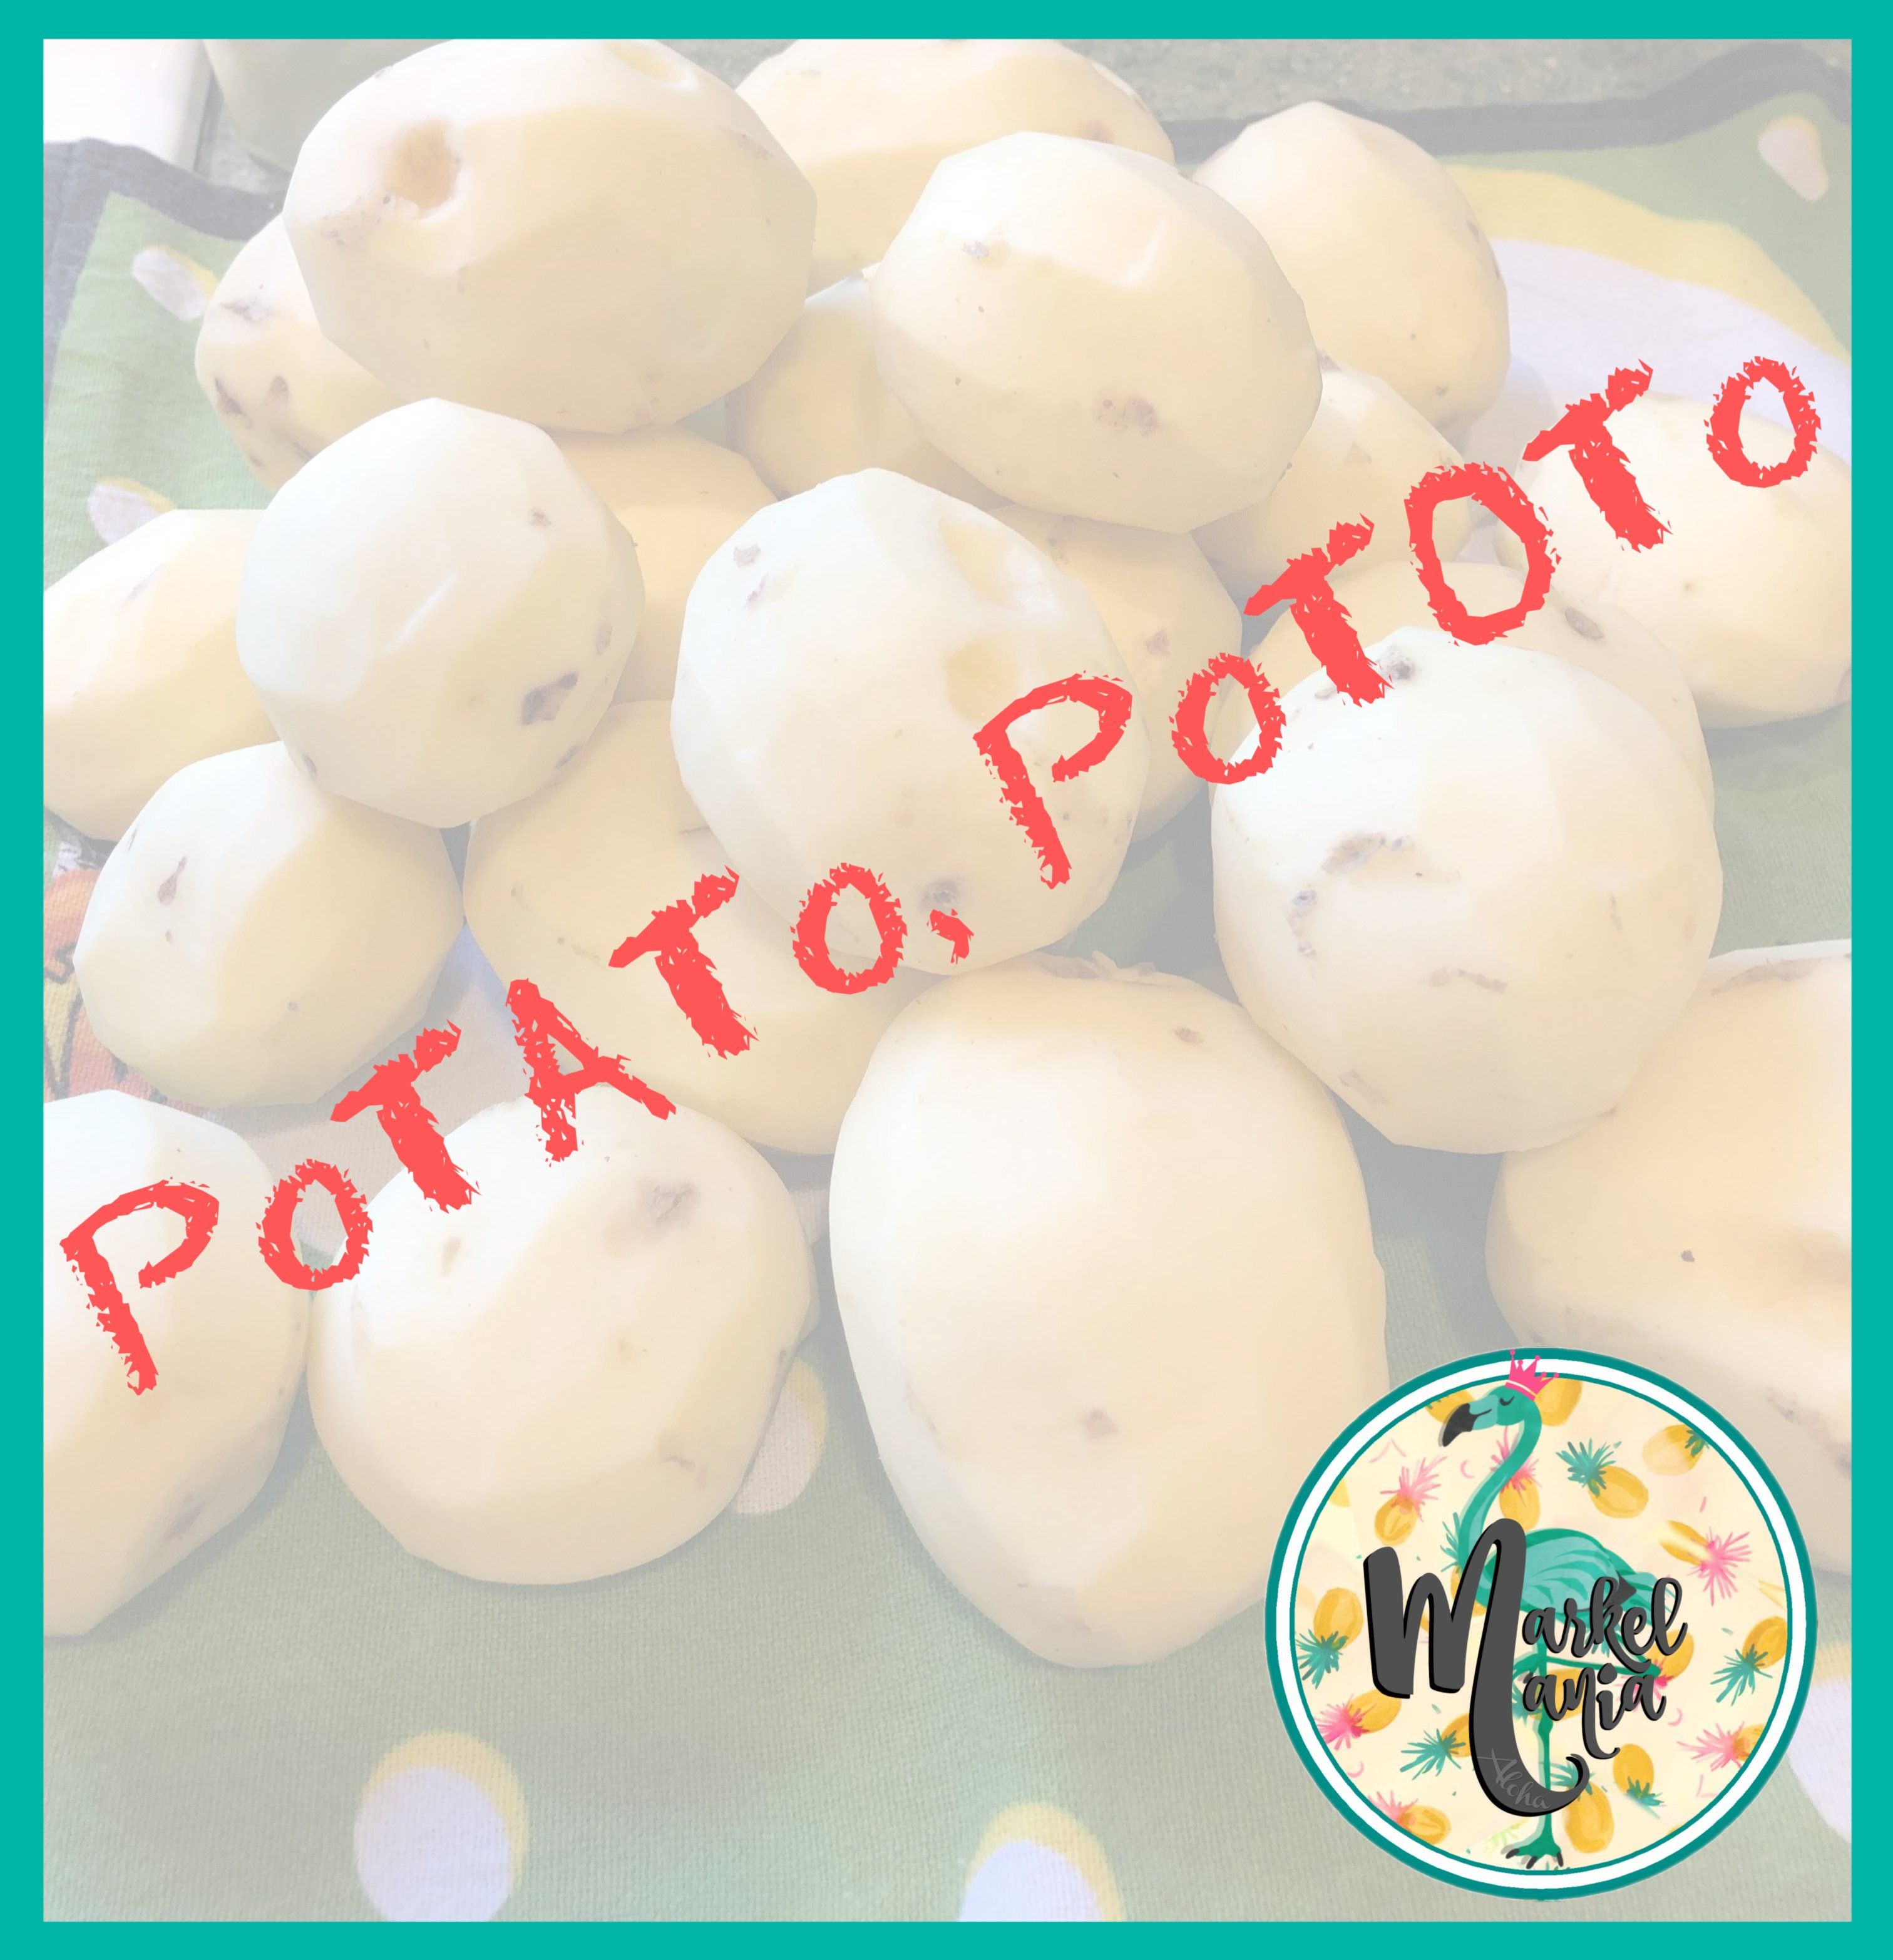 different ways to cook potatoes ahead of time and store